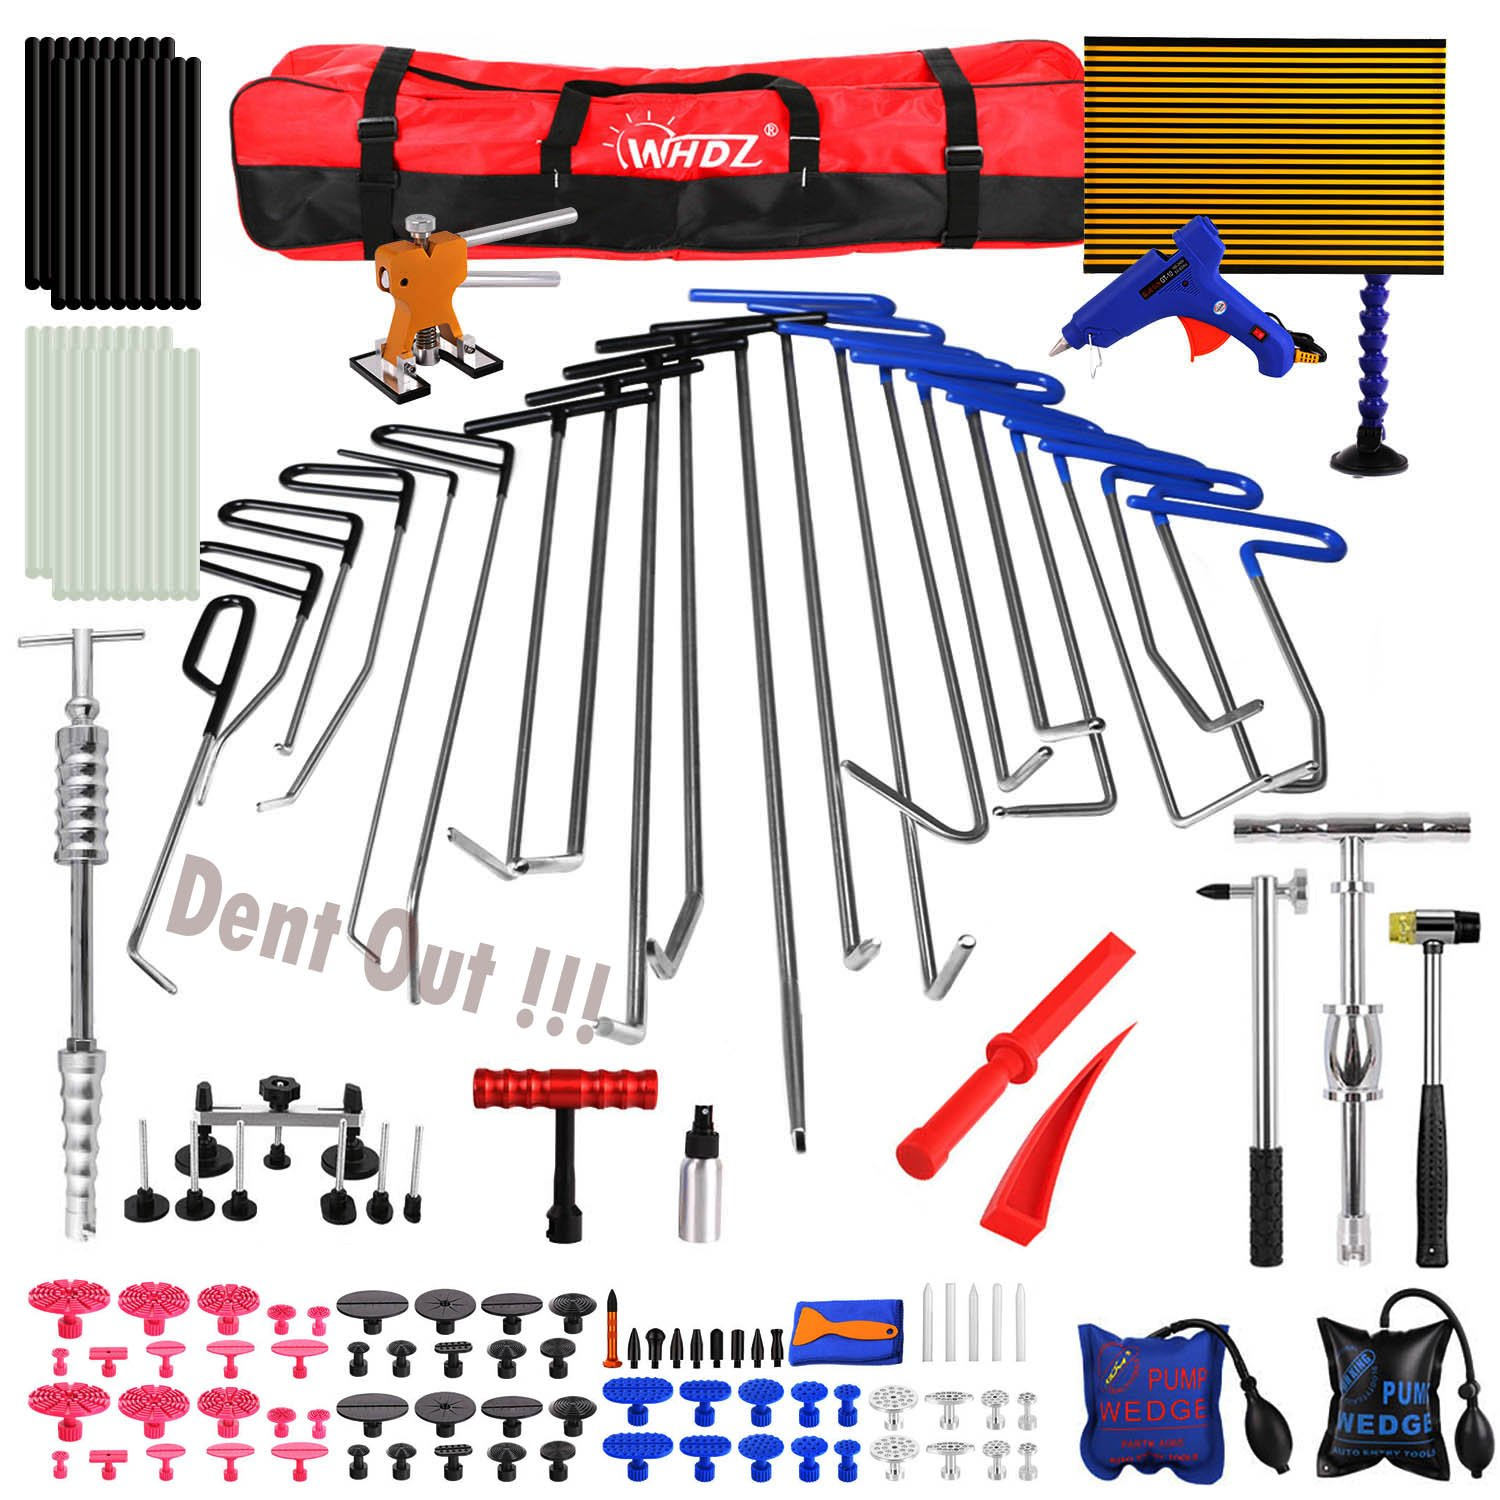 WHDZ Paintless Dent Repair Tools Kit, Tool Kit for Hail Damage Removal - 21pcs Paintless Dent Rods Dent Puller Slide Hammer Dent Lifter Glue Gun Tap Down Light Reflect Board Auto Dent Repair Kit